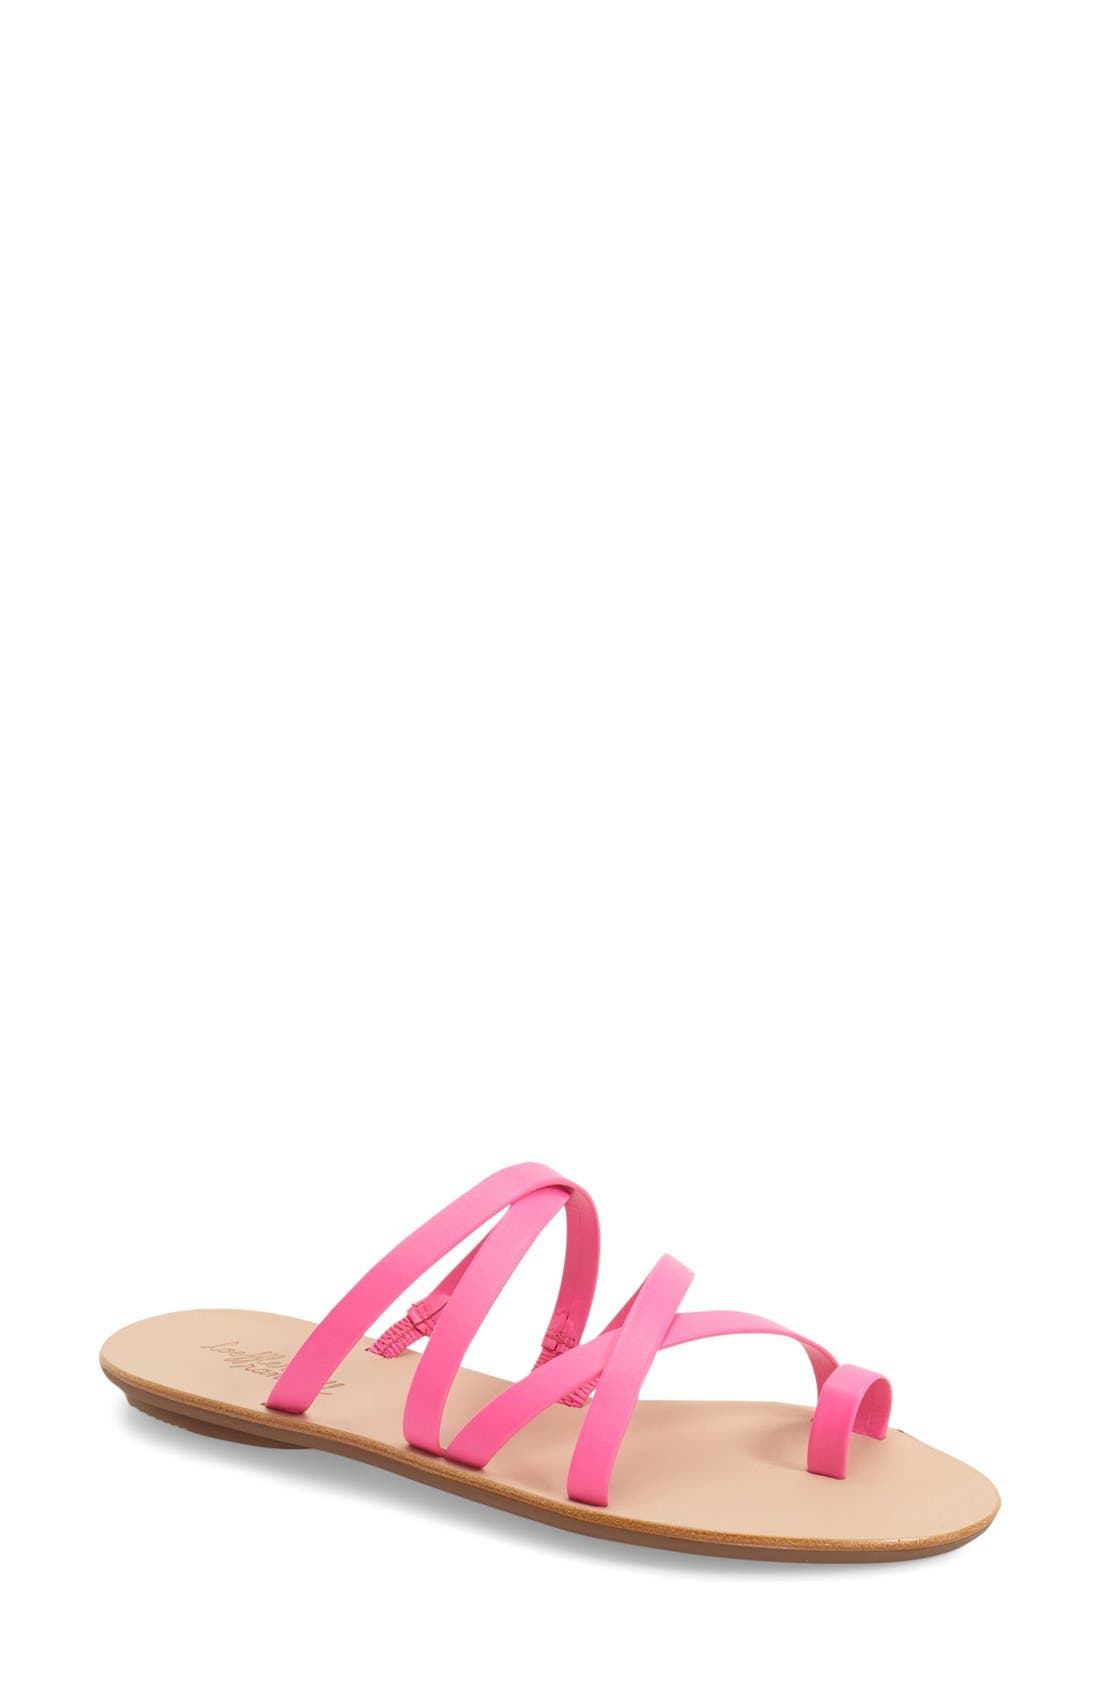 'Sarie' Strappy Flat Sandal, Main, color, 690